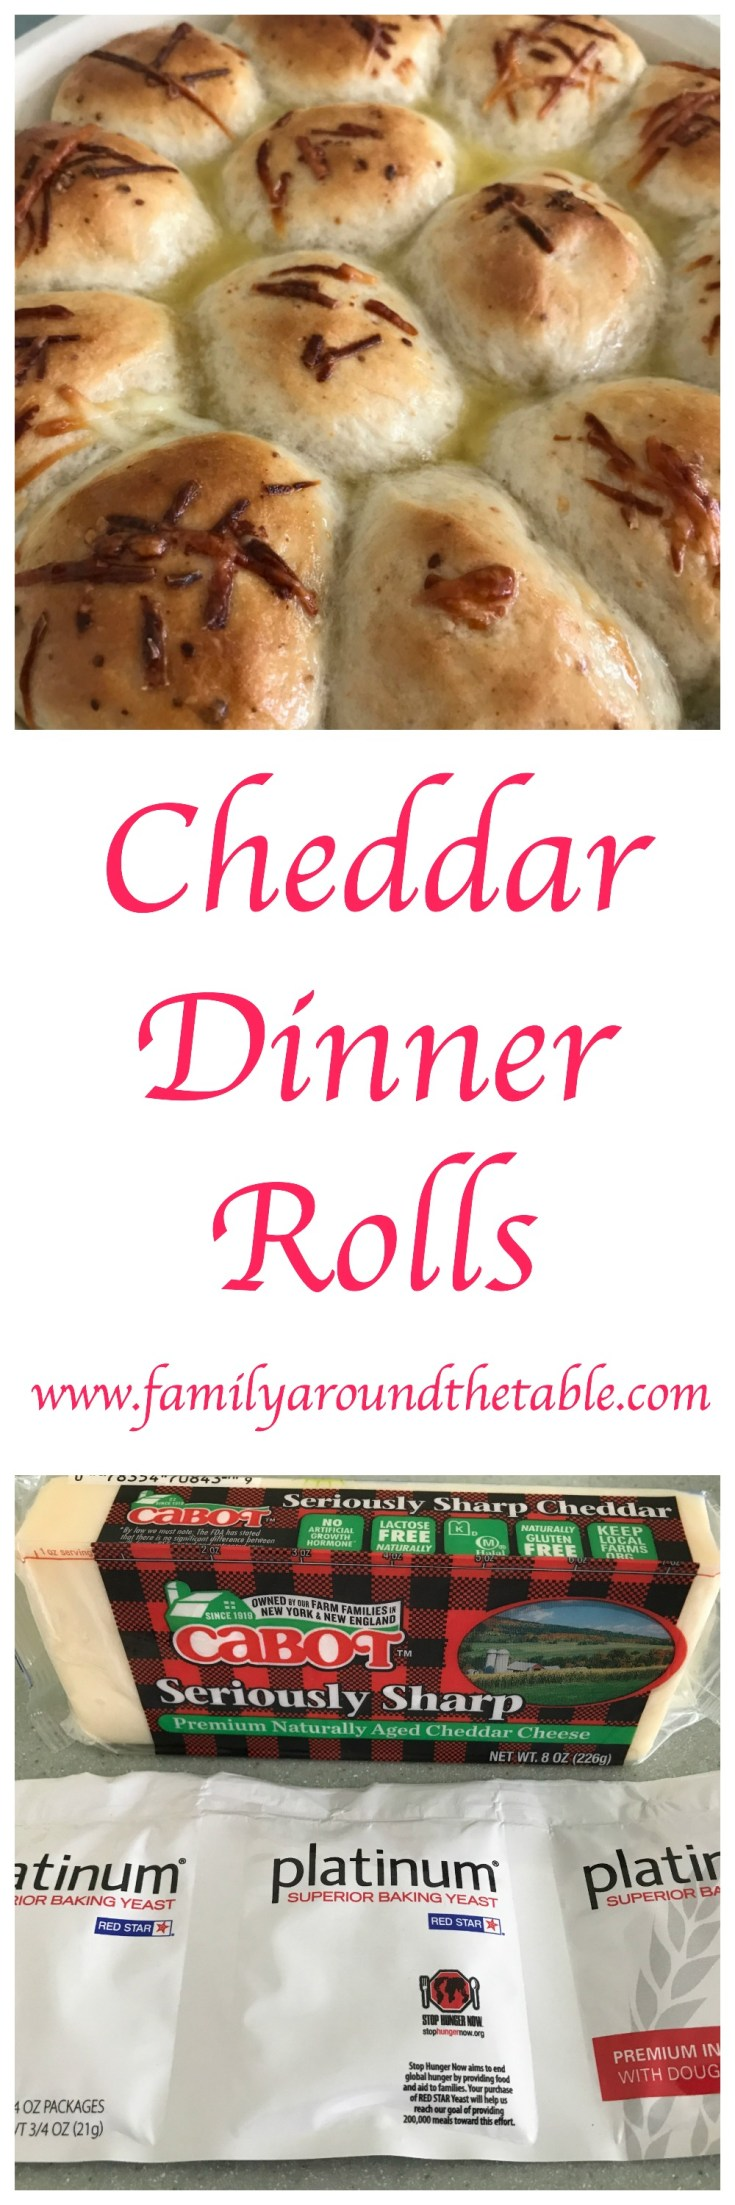 Cheddar dinner rolls are a great addition to any meal.